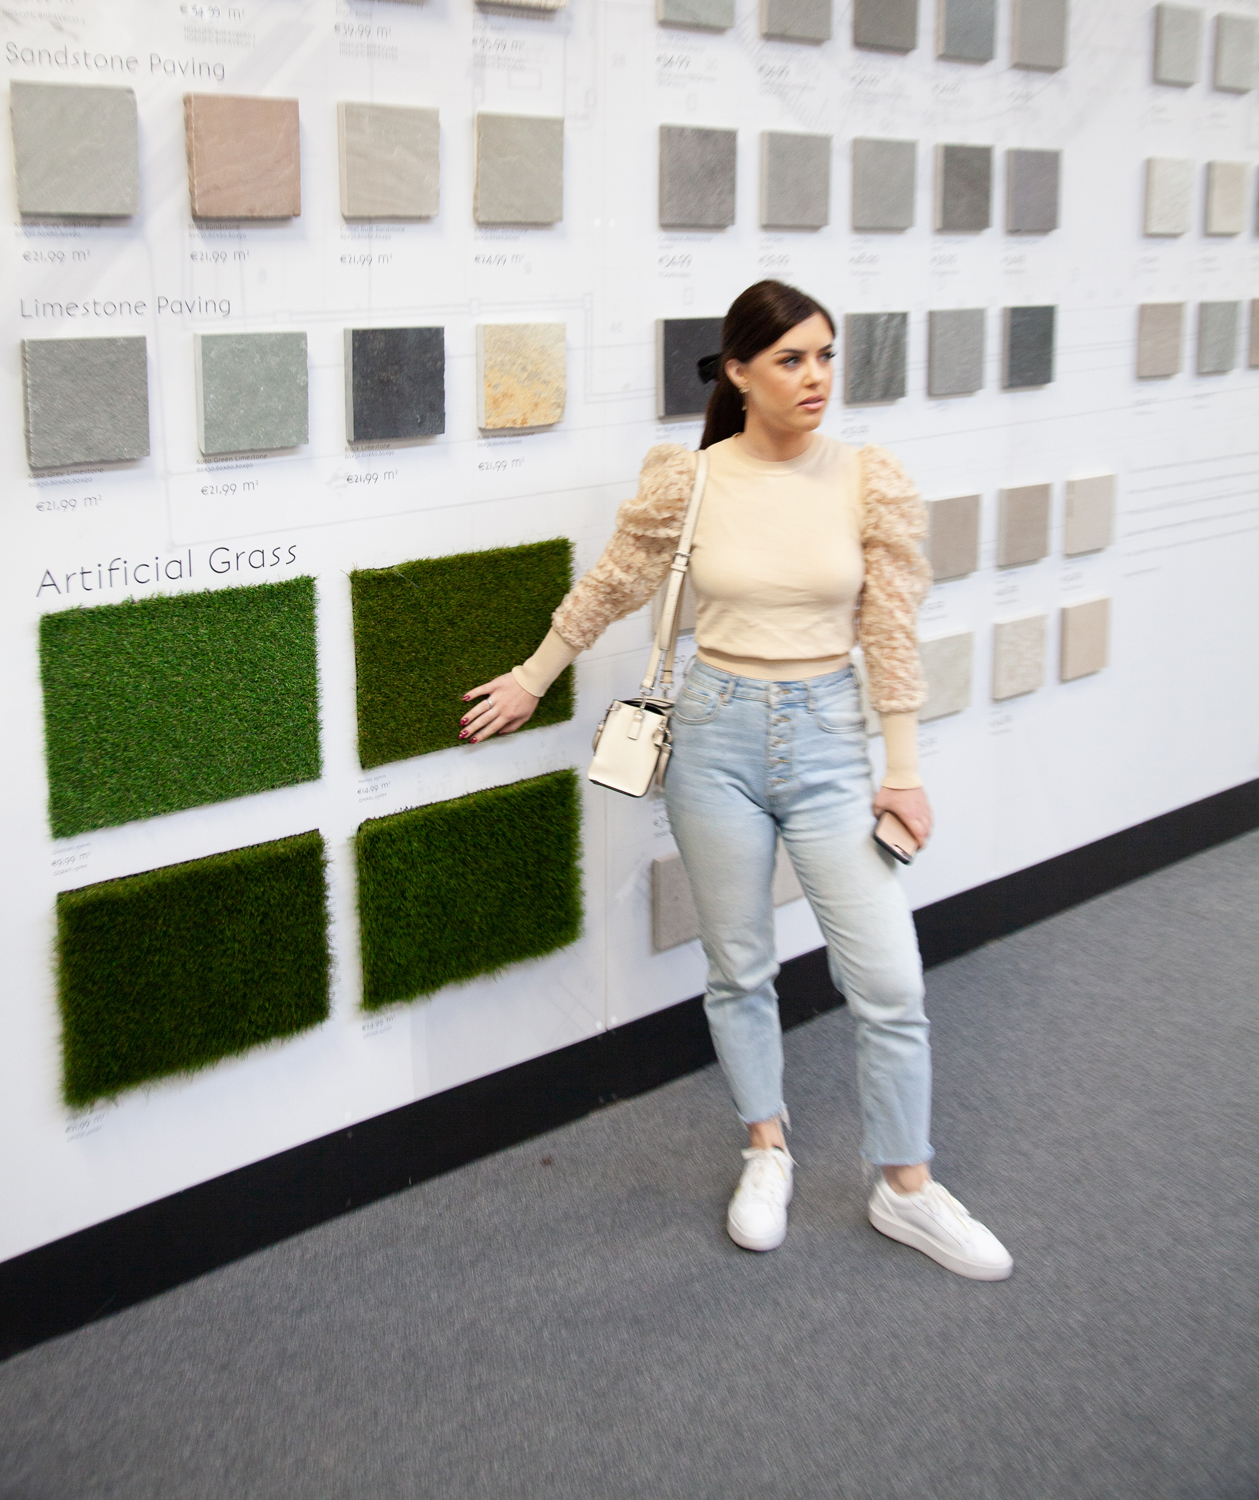 Artificial Grass Shopping